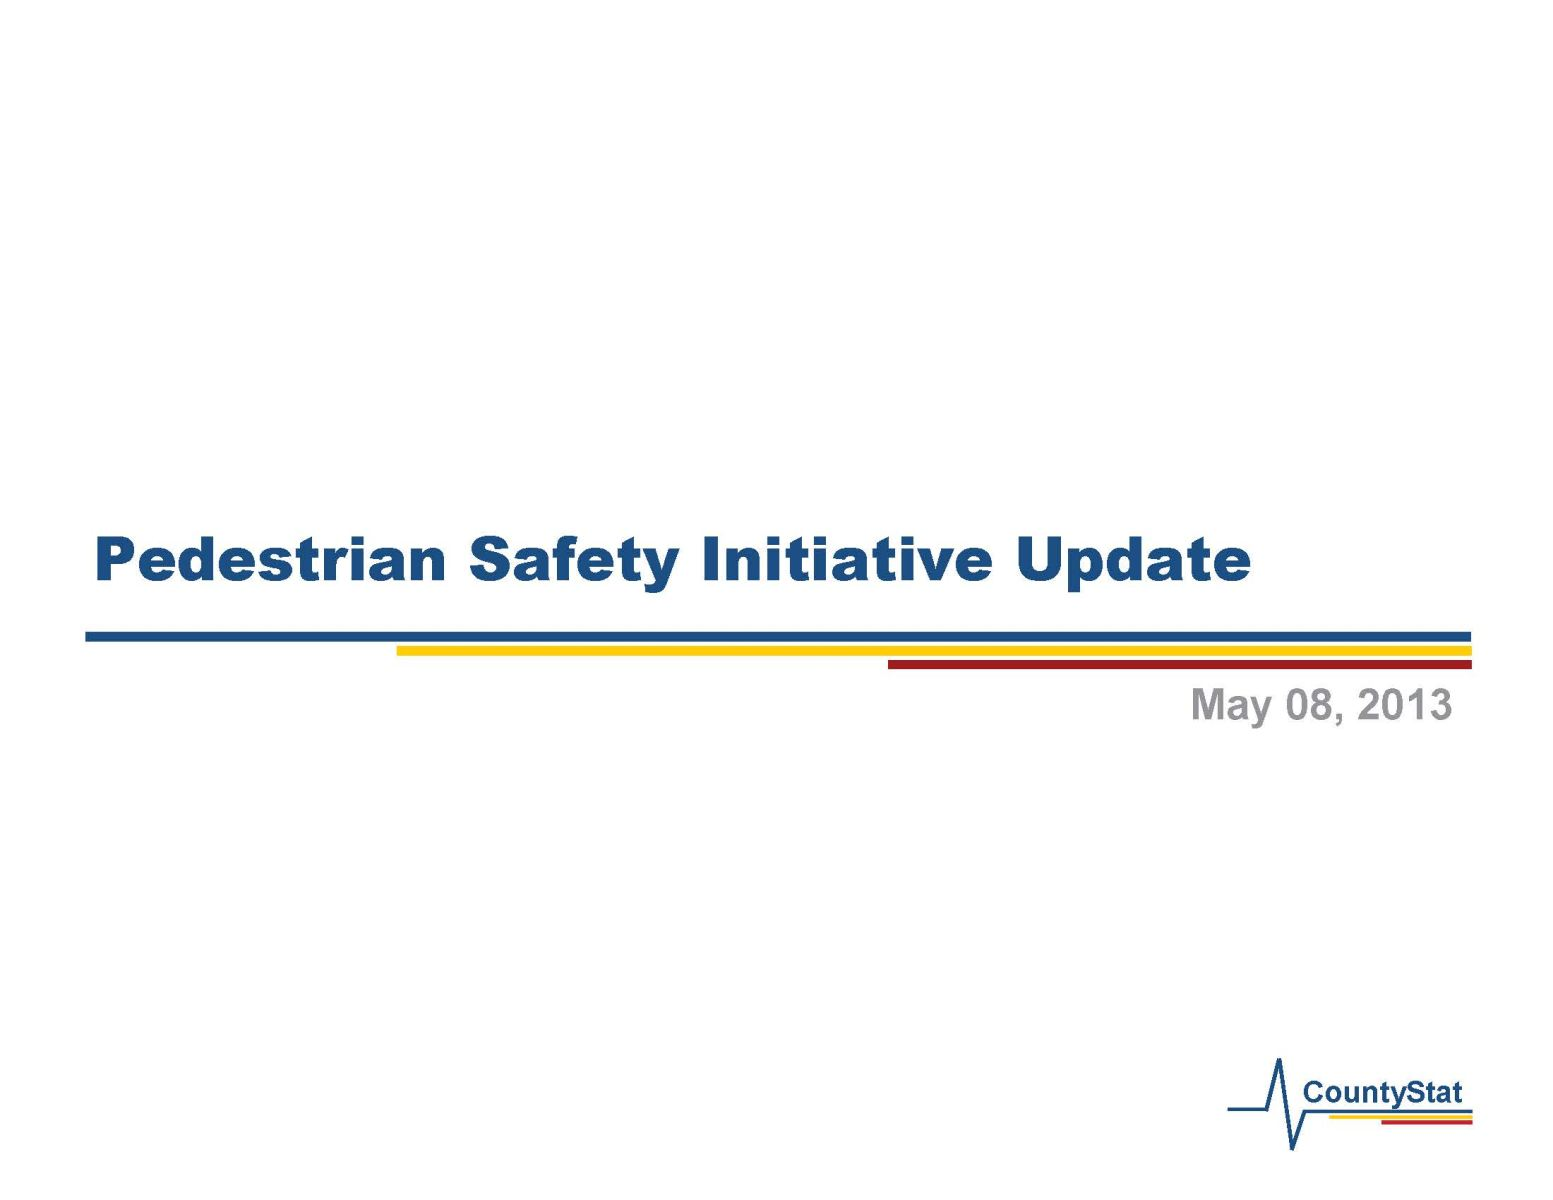 May 8, 2013 County Stat Pedestrian Safety Presentation